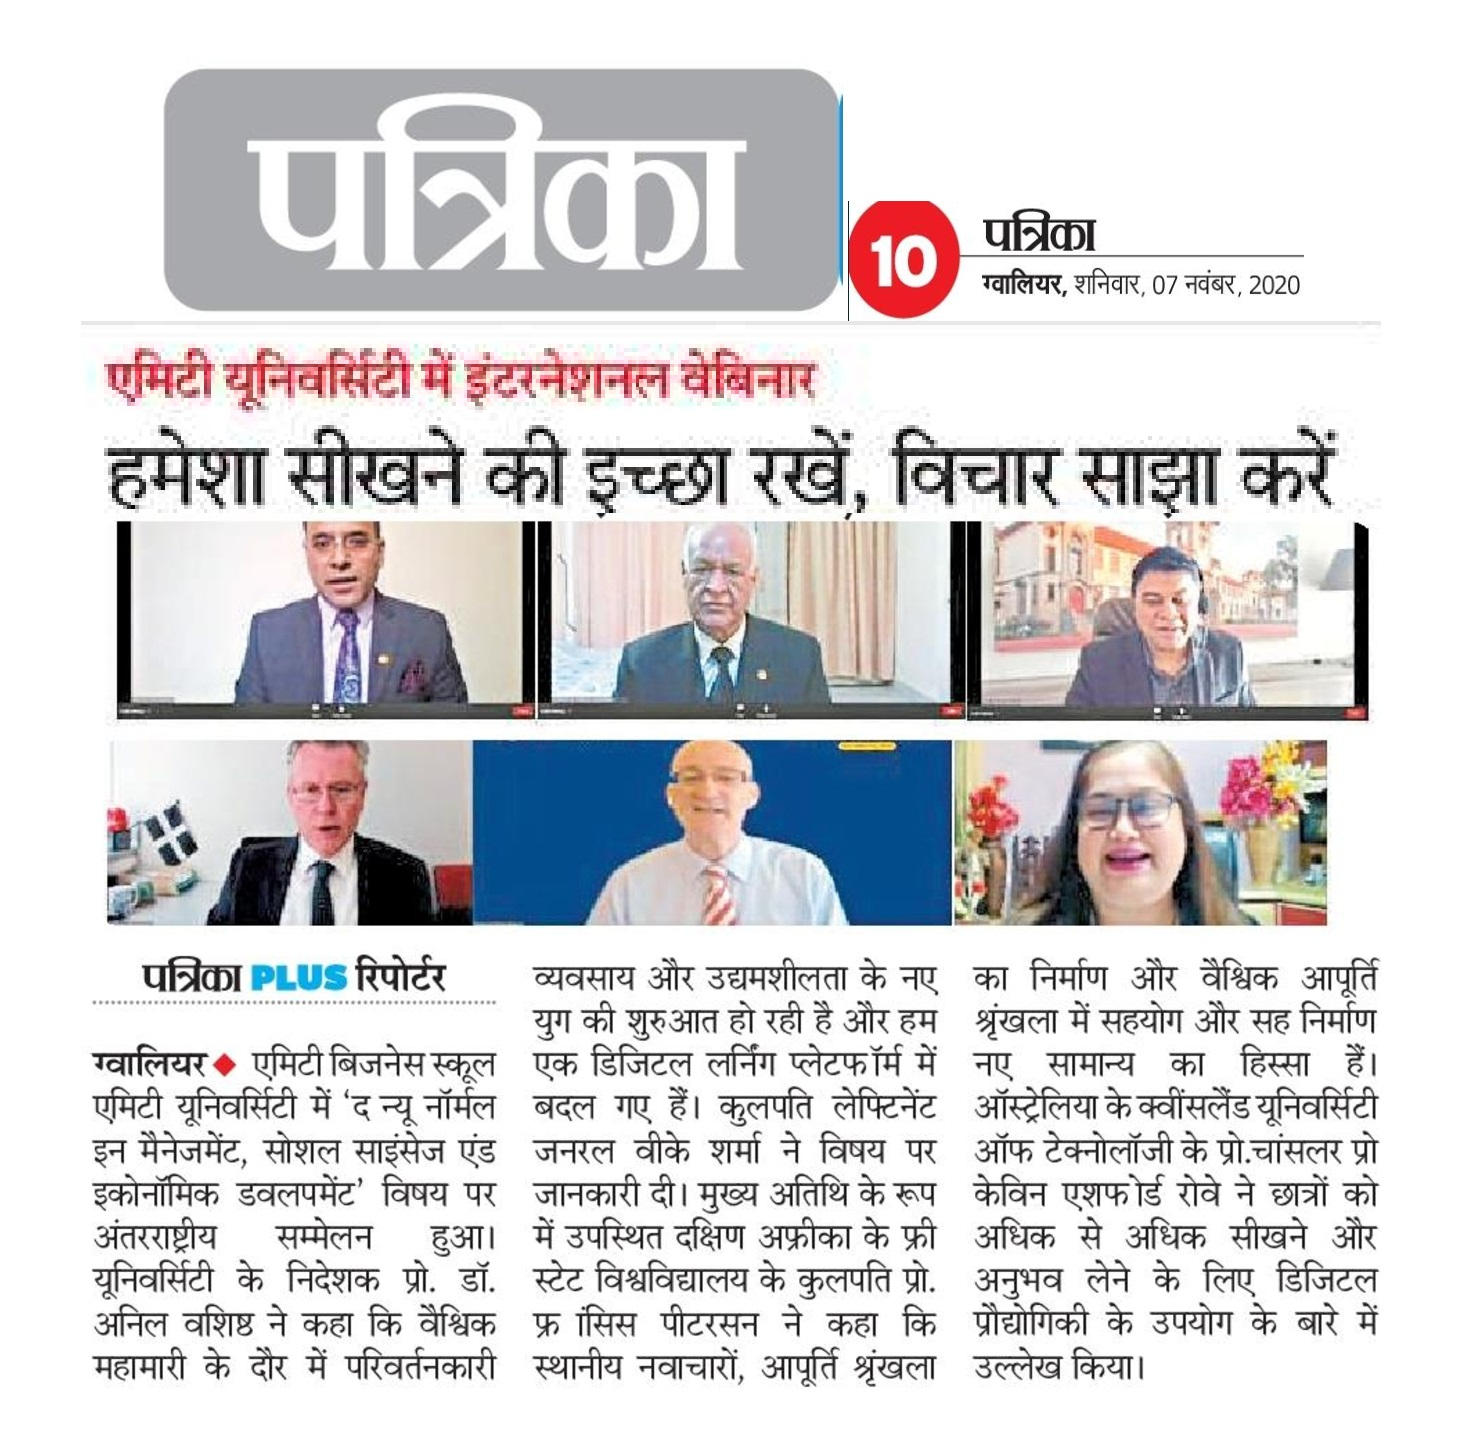 PATRIKA-7.11.2020-AUMP- International Conference on The New Normal in Management, Social Sciences and Economic Development-Amity